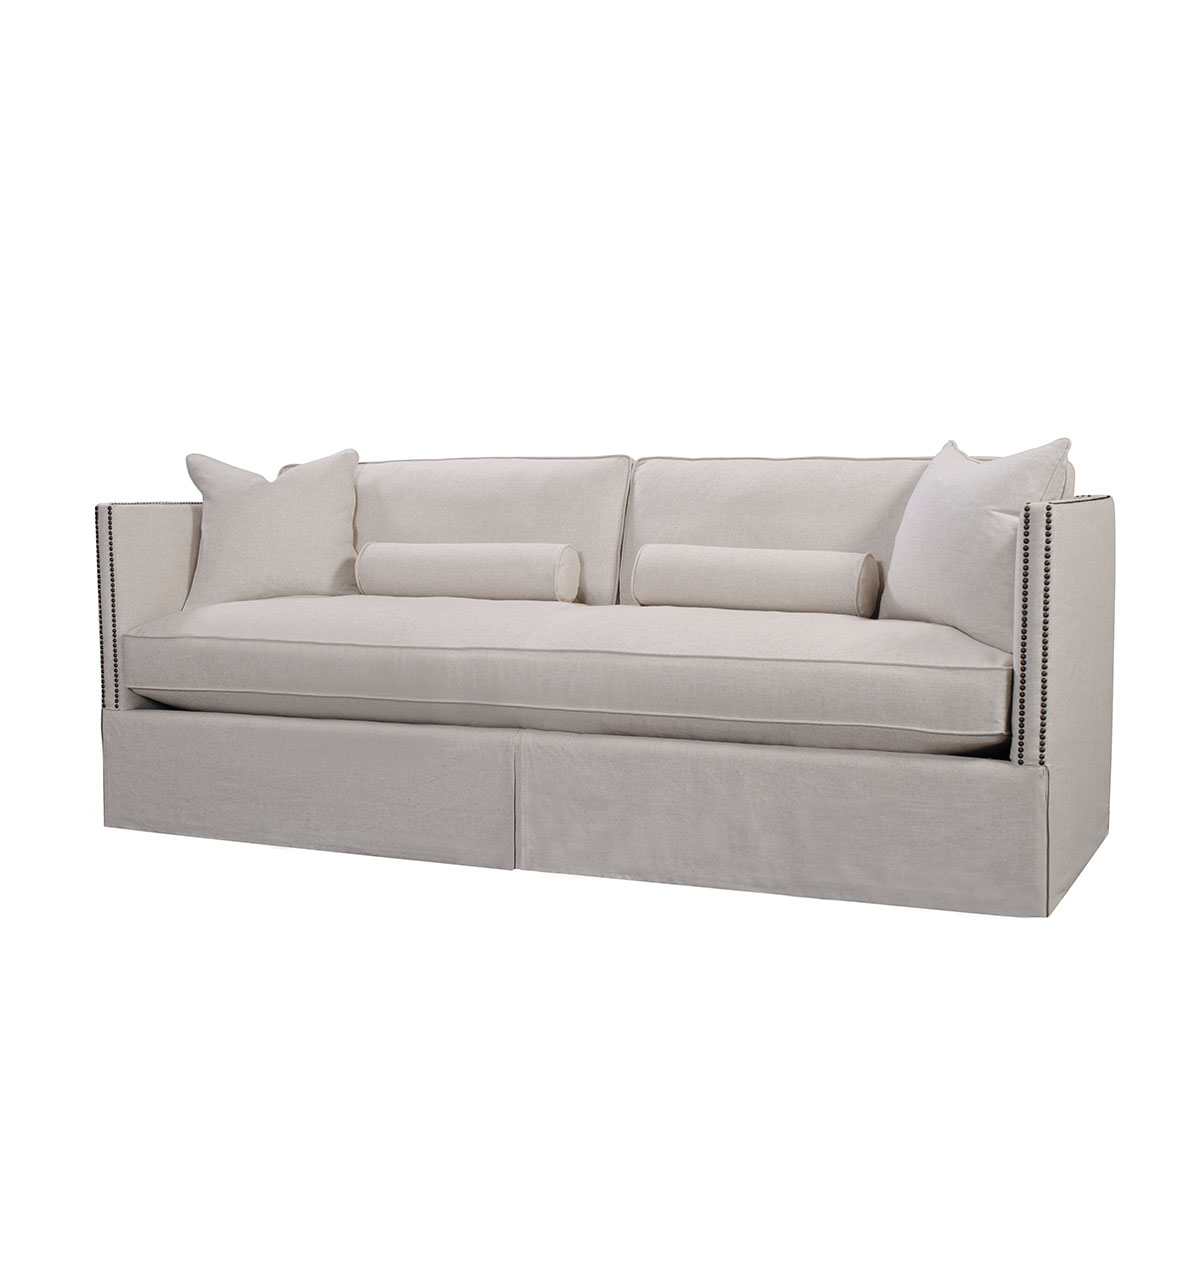 Morrison Sofa Spectra Home Furniture